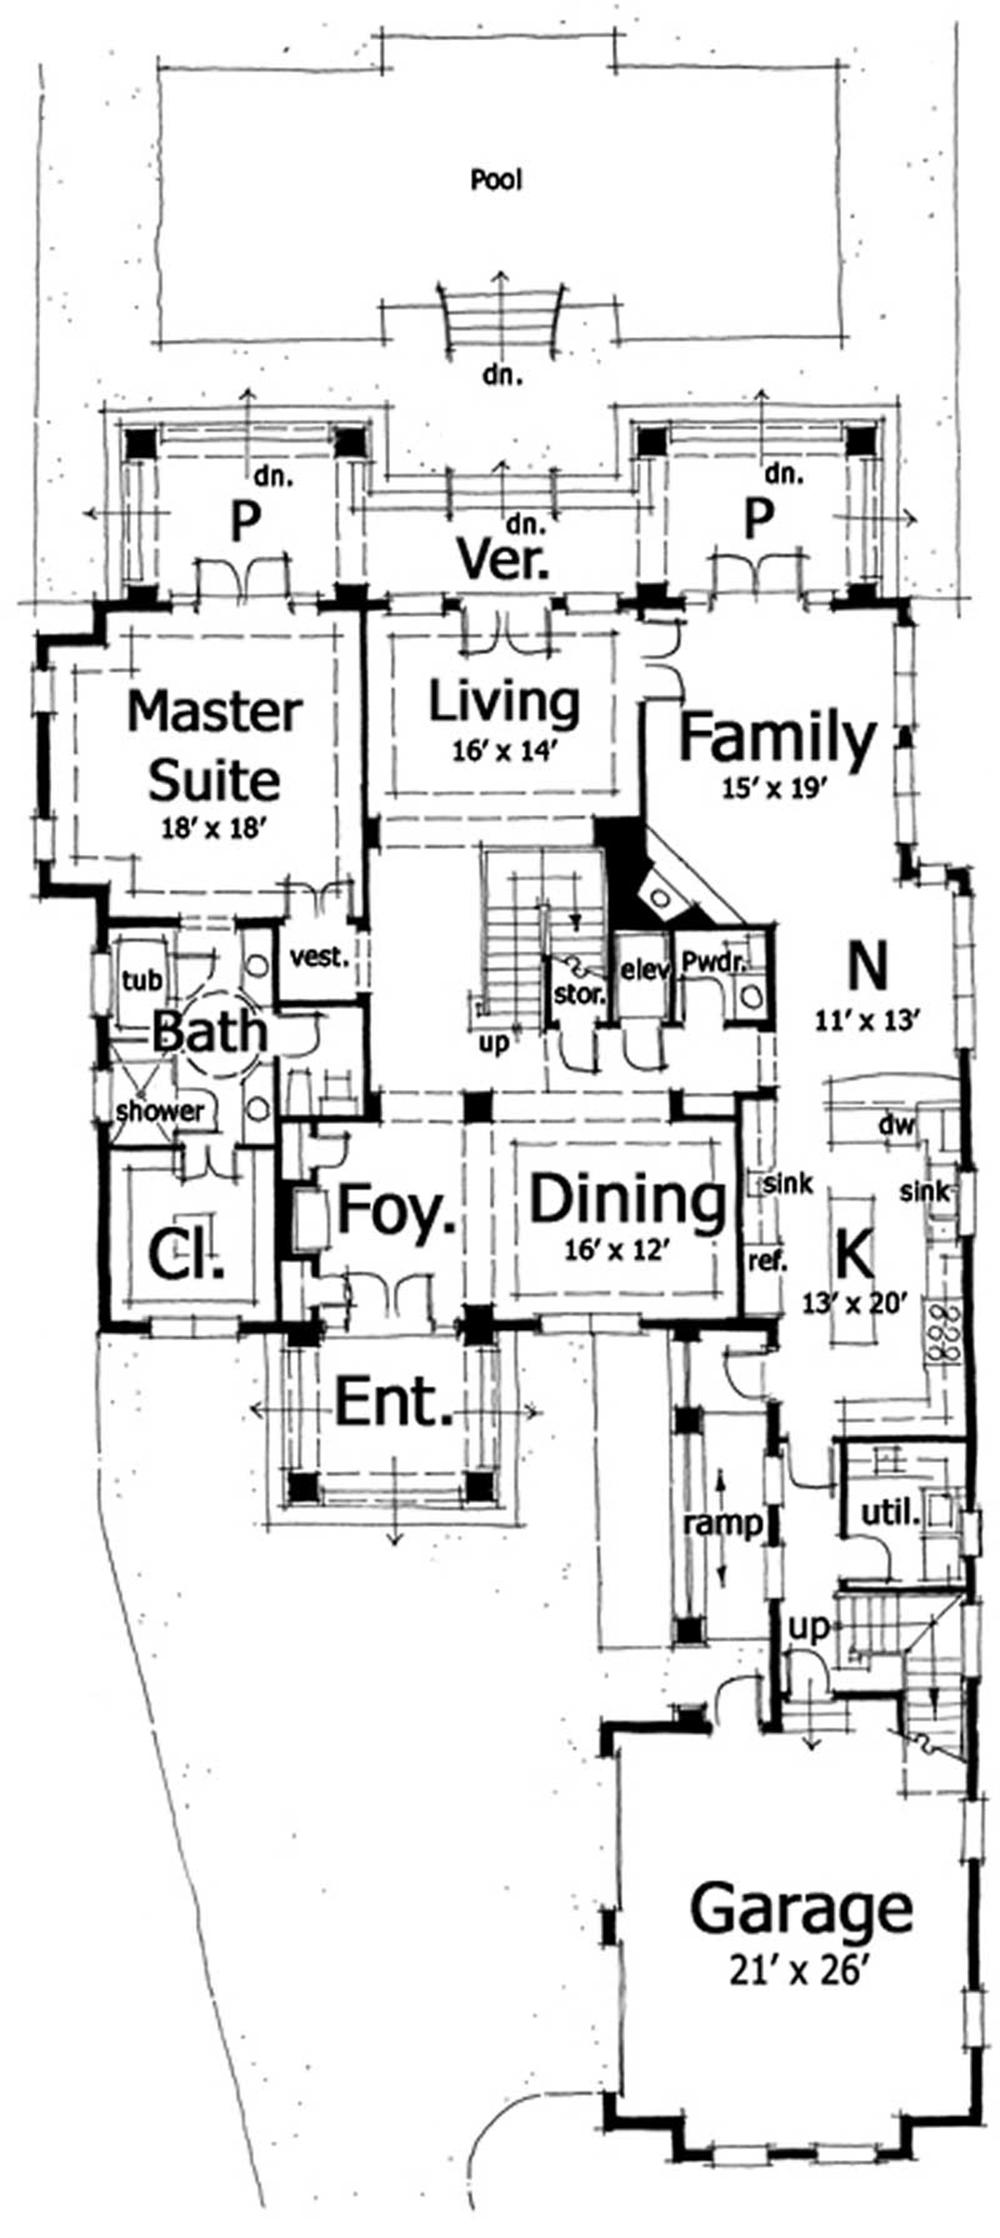 Floor Plan First Story for Bungalow House Plan DT-0025